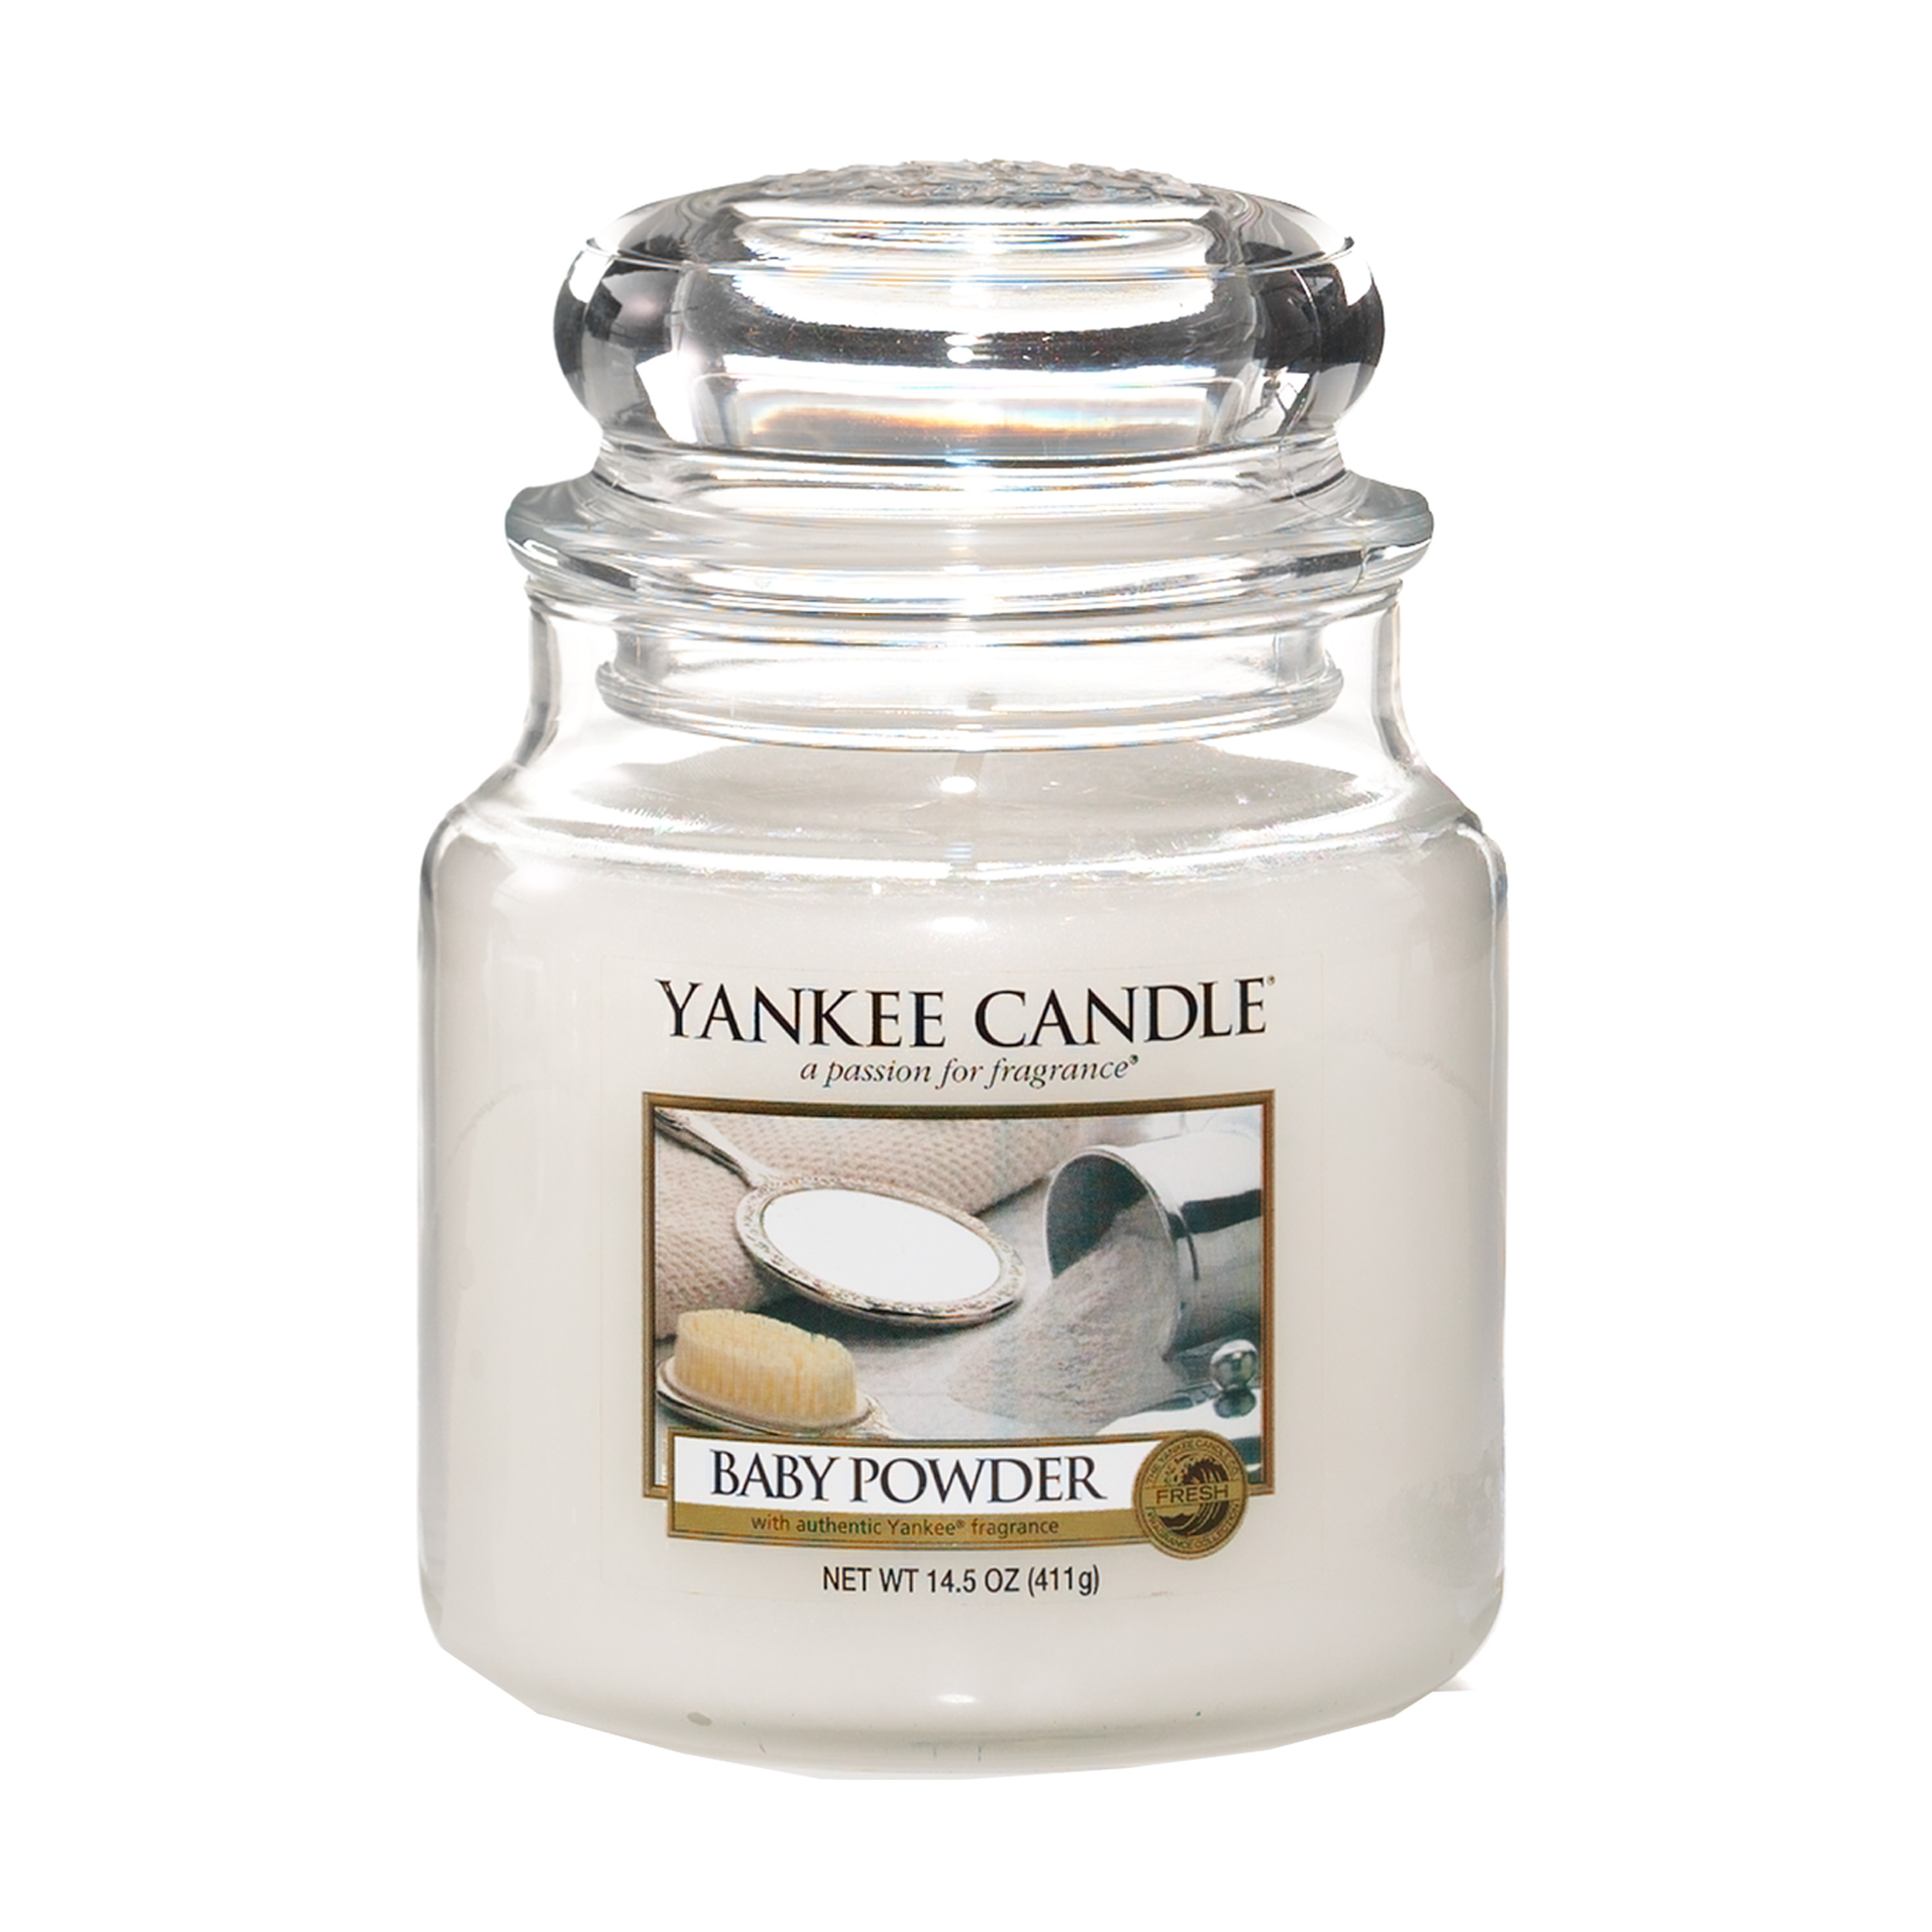 Yankee Candle Classic Housewarmer Medium Baby Powder Scented Candle Room Scent In Glass Jar 1122151e At About Tea De Shop